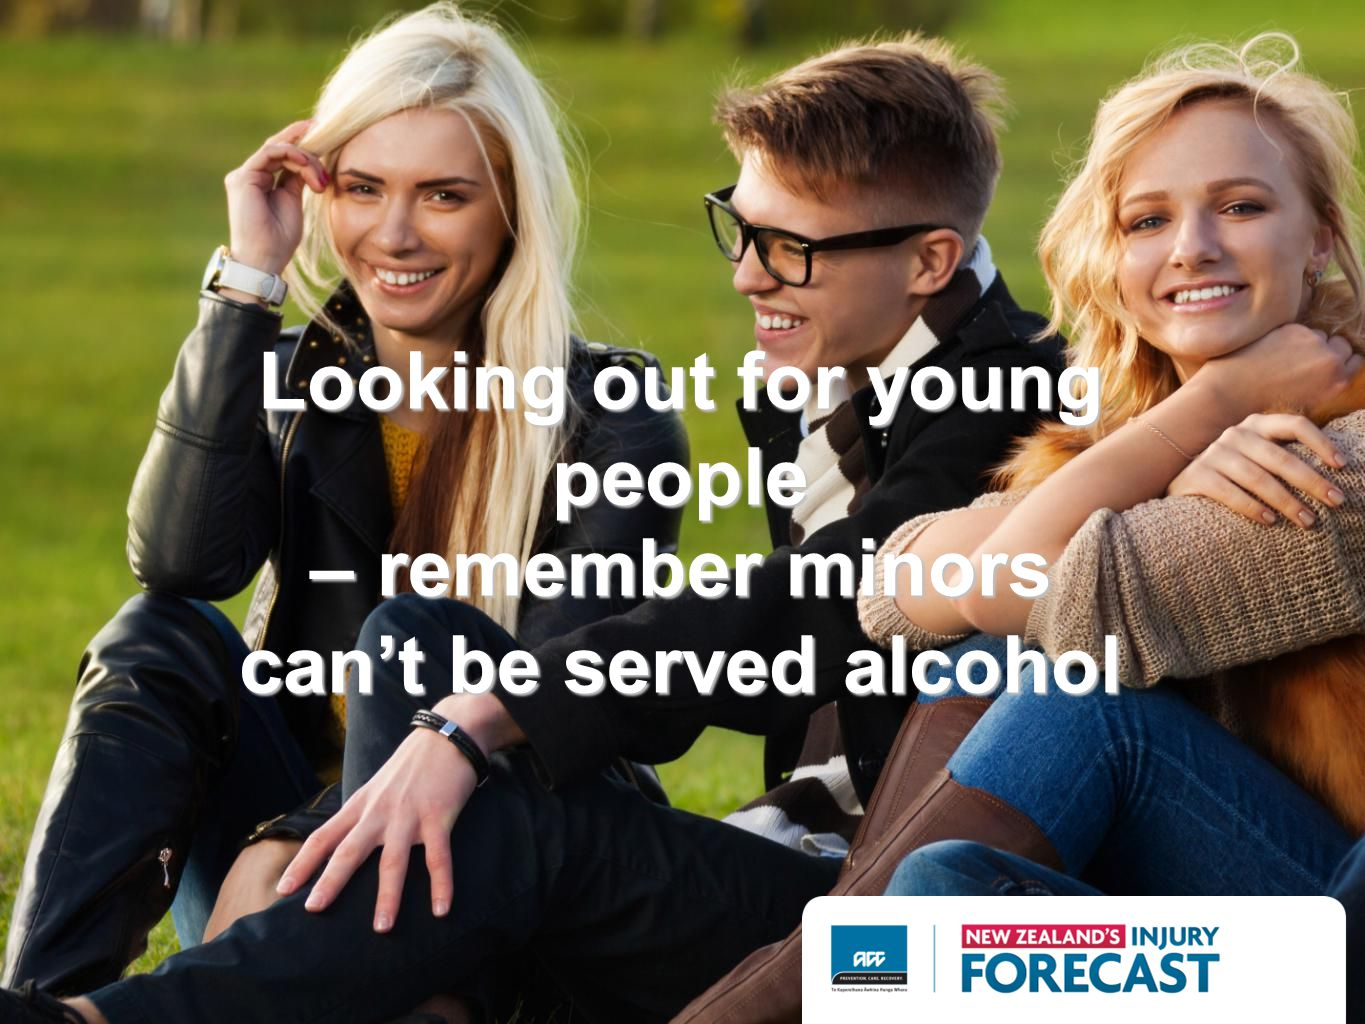 Looking out for young people – remember minors cant be served alcohol